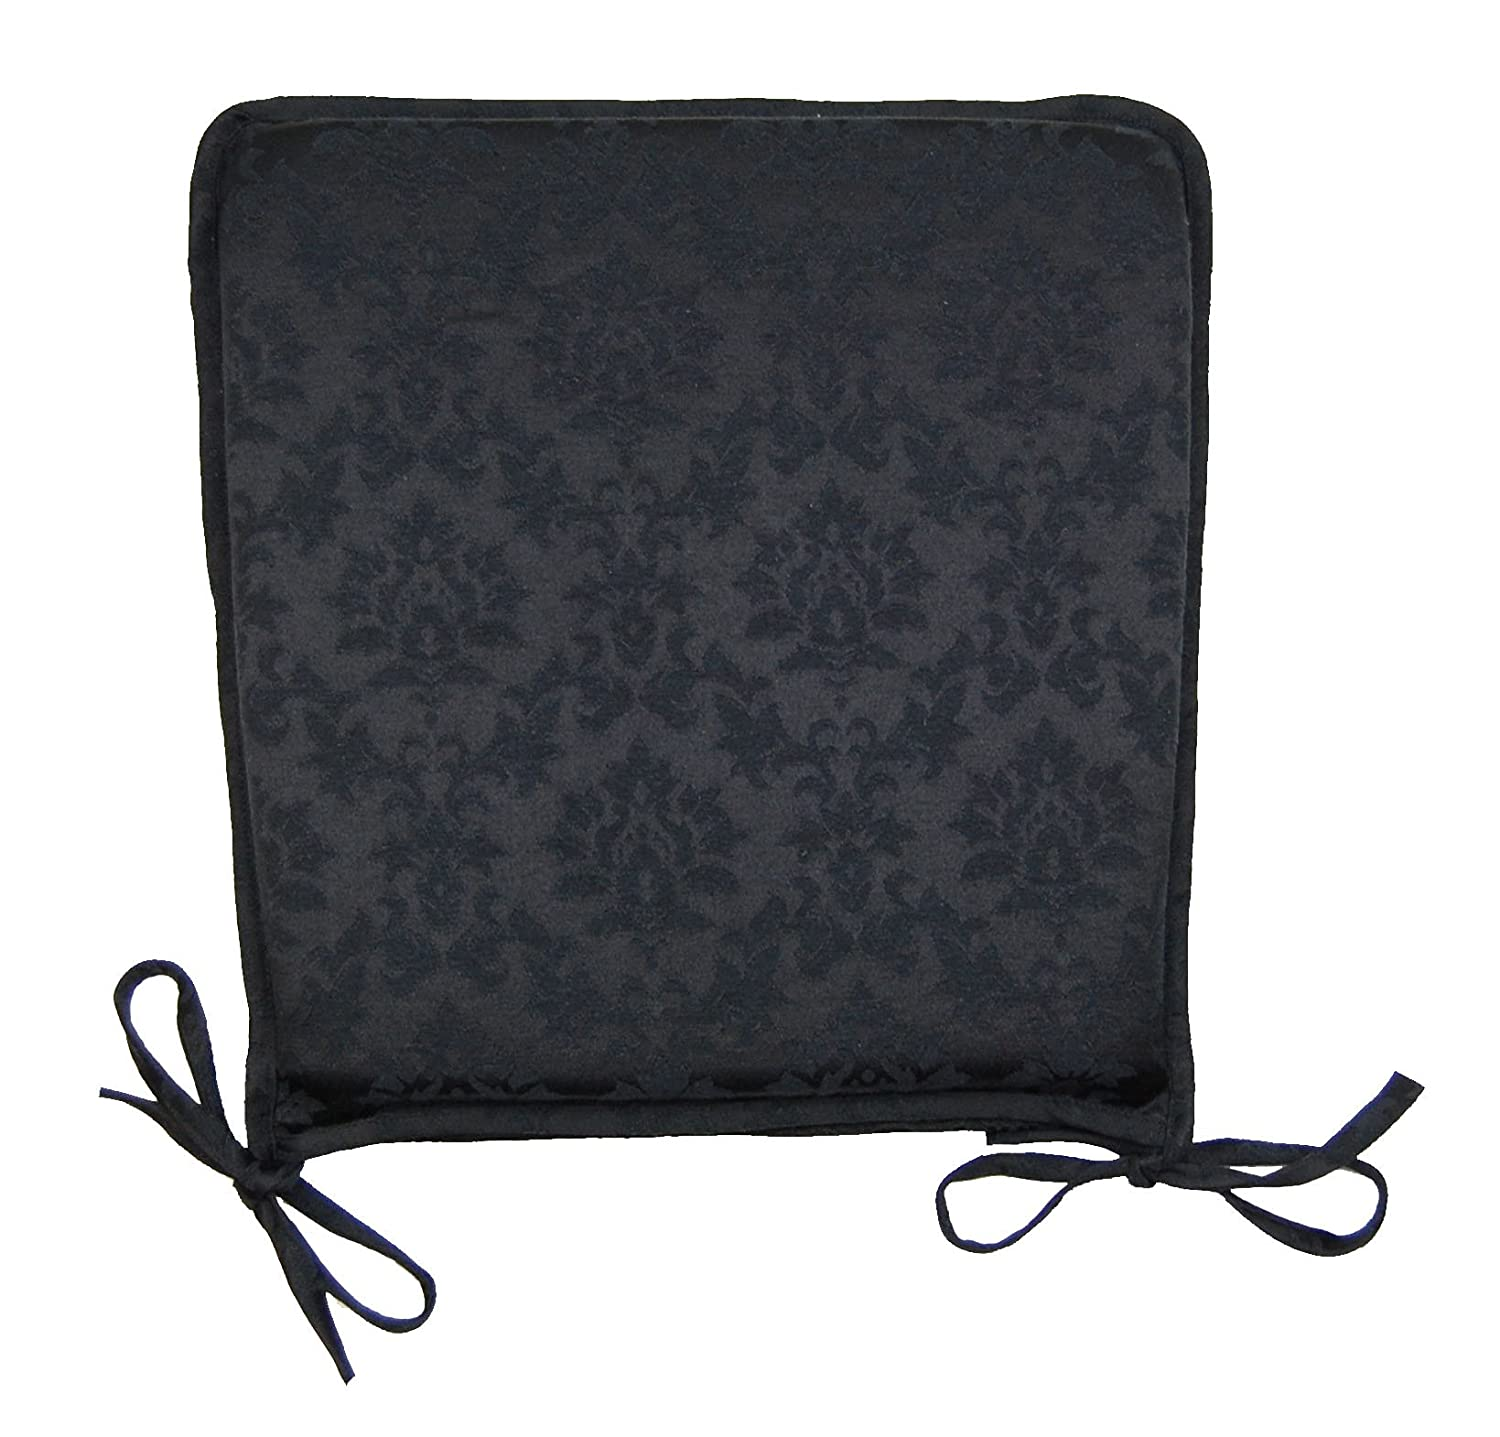 Damask Black Luxury Seat Pad 40x37cm (15.5x14.5inch) Approx Cache Designs